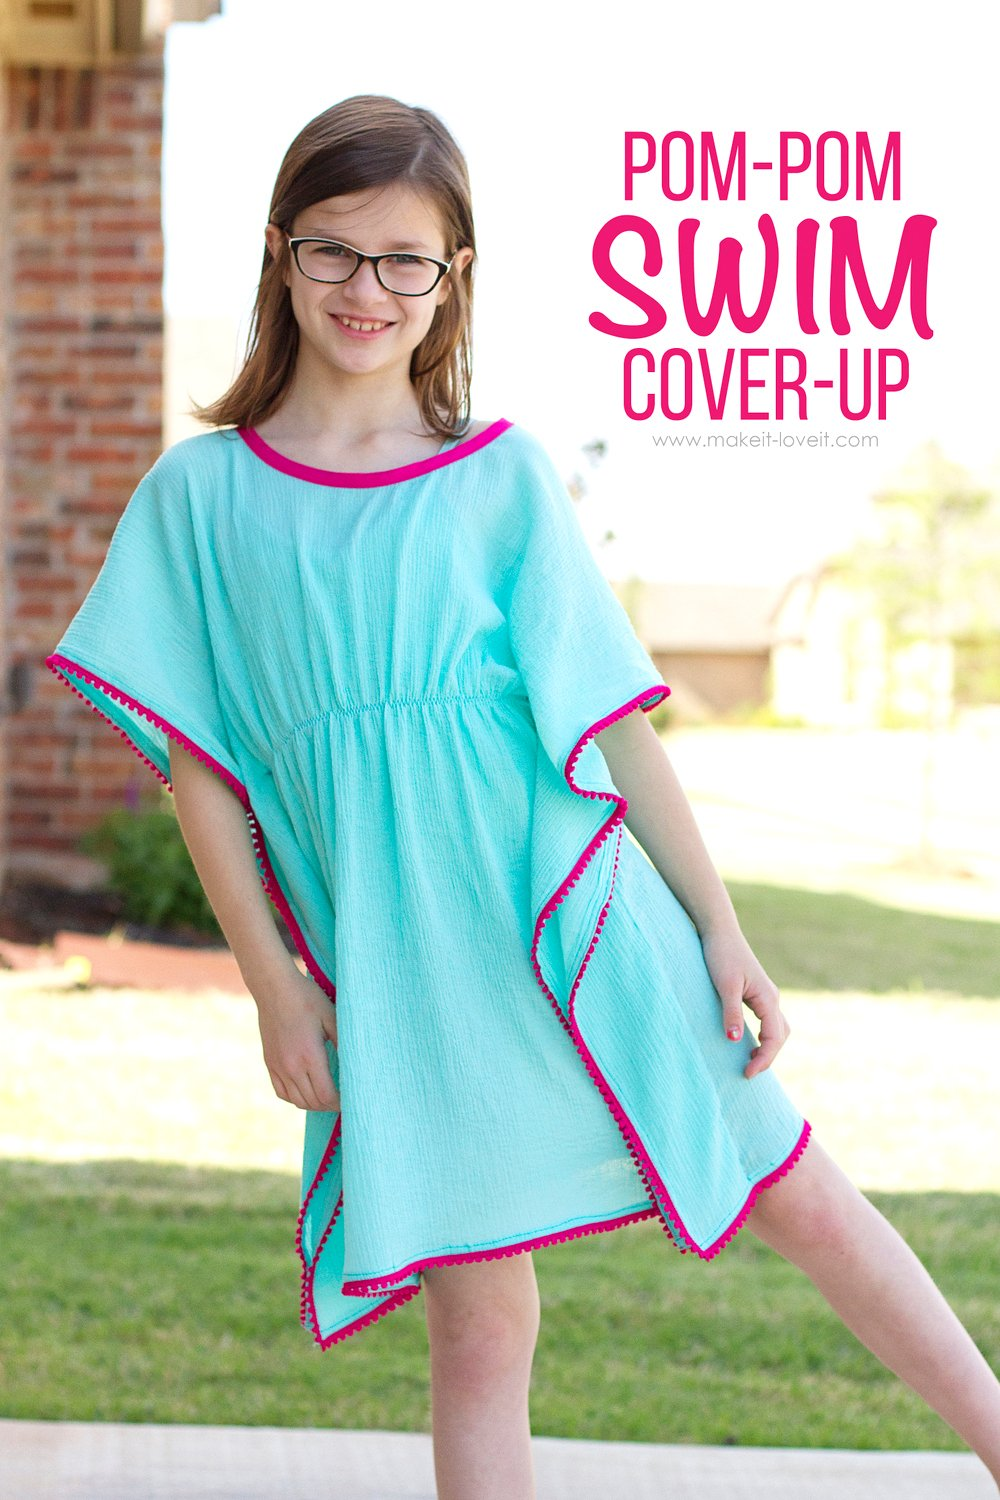 DIY Pom-Pom Swim Cover-Up.....a simple sew, for girls and women both!   via Make It and Love It